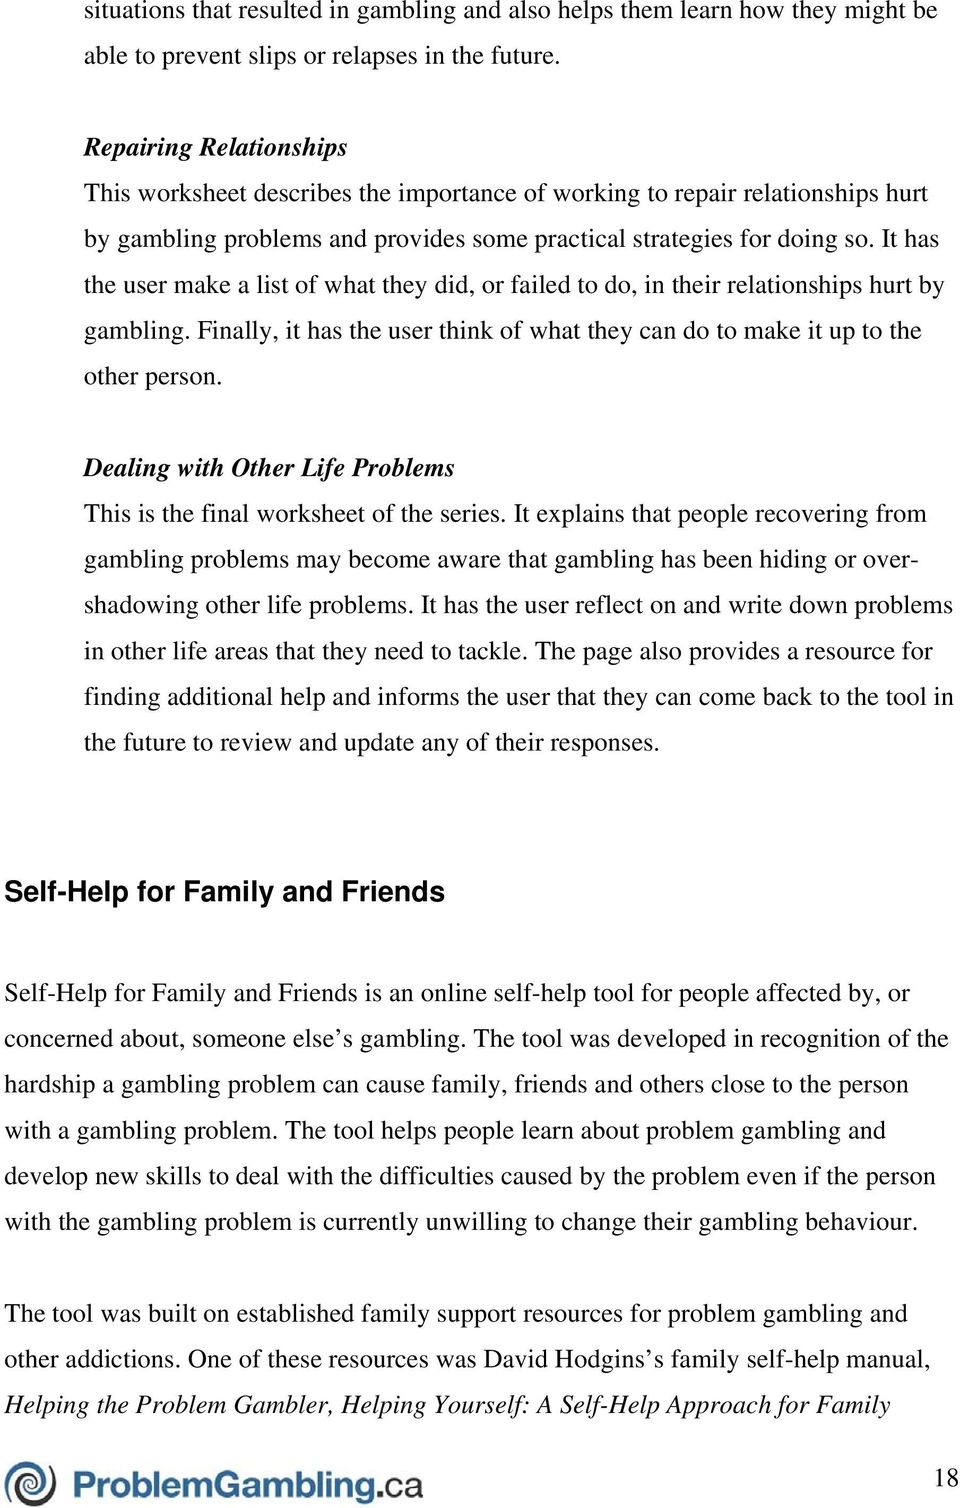 Problem gambling worksheets